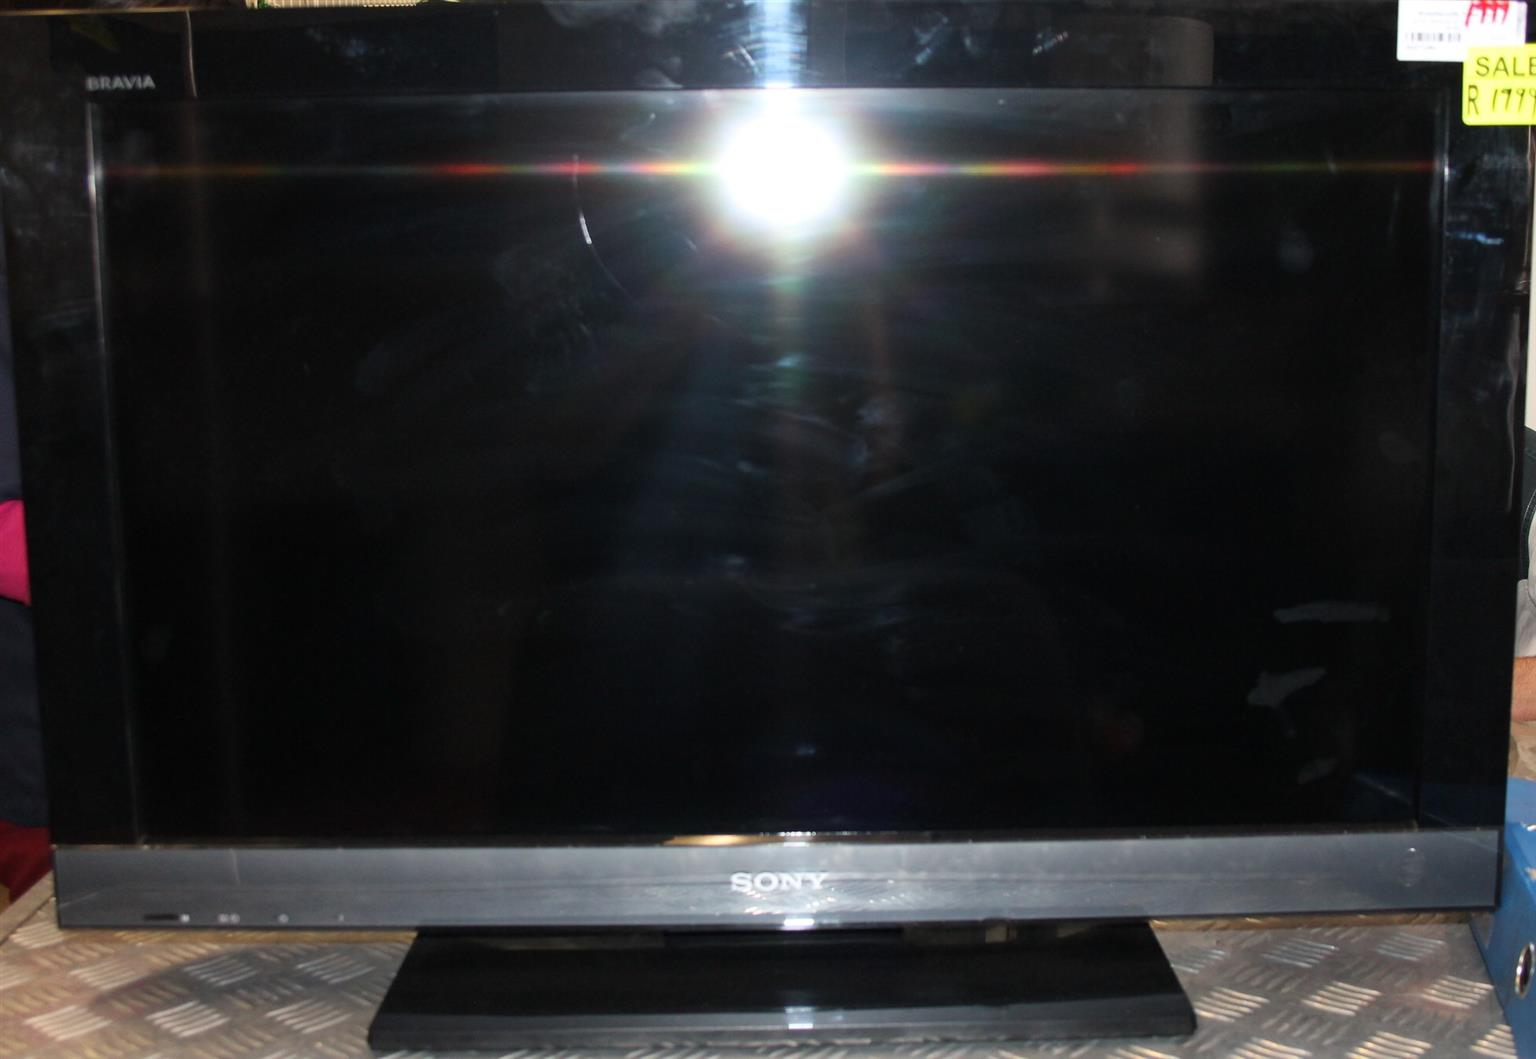 Sony 32 inch tv S027129c #Rosettenvillepawnshop